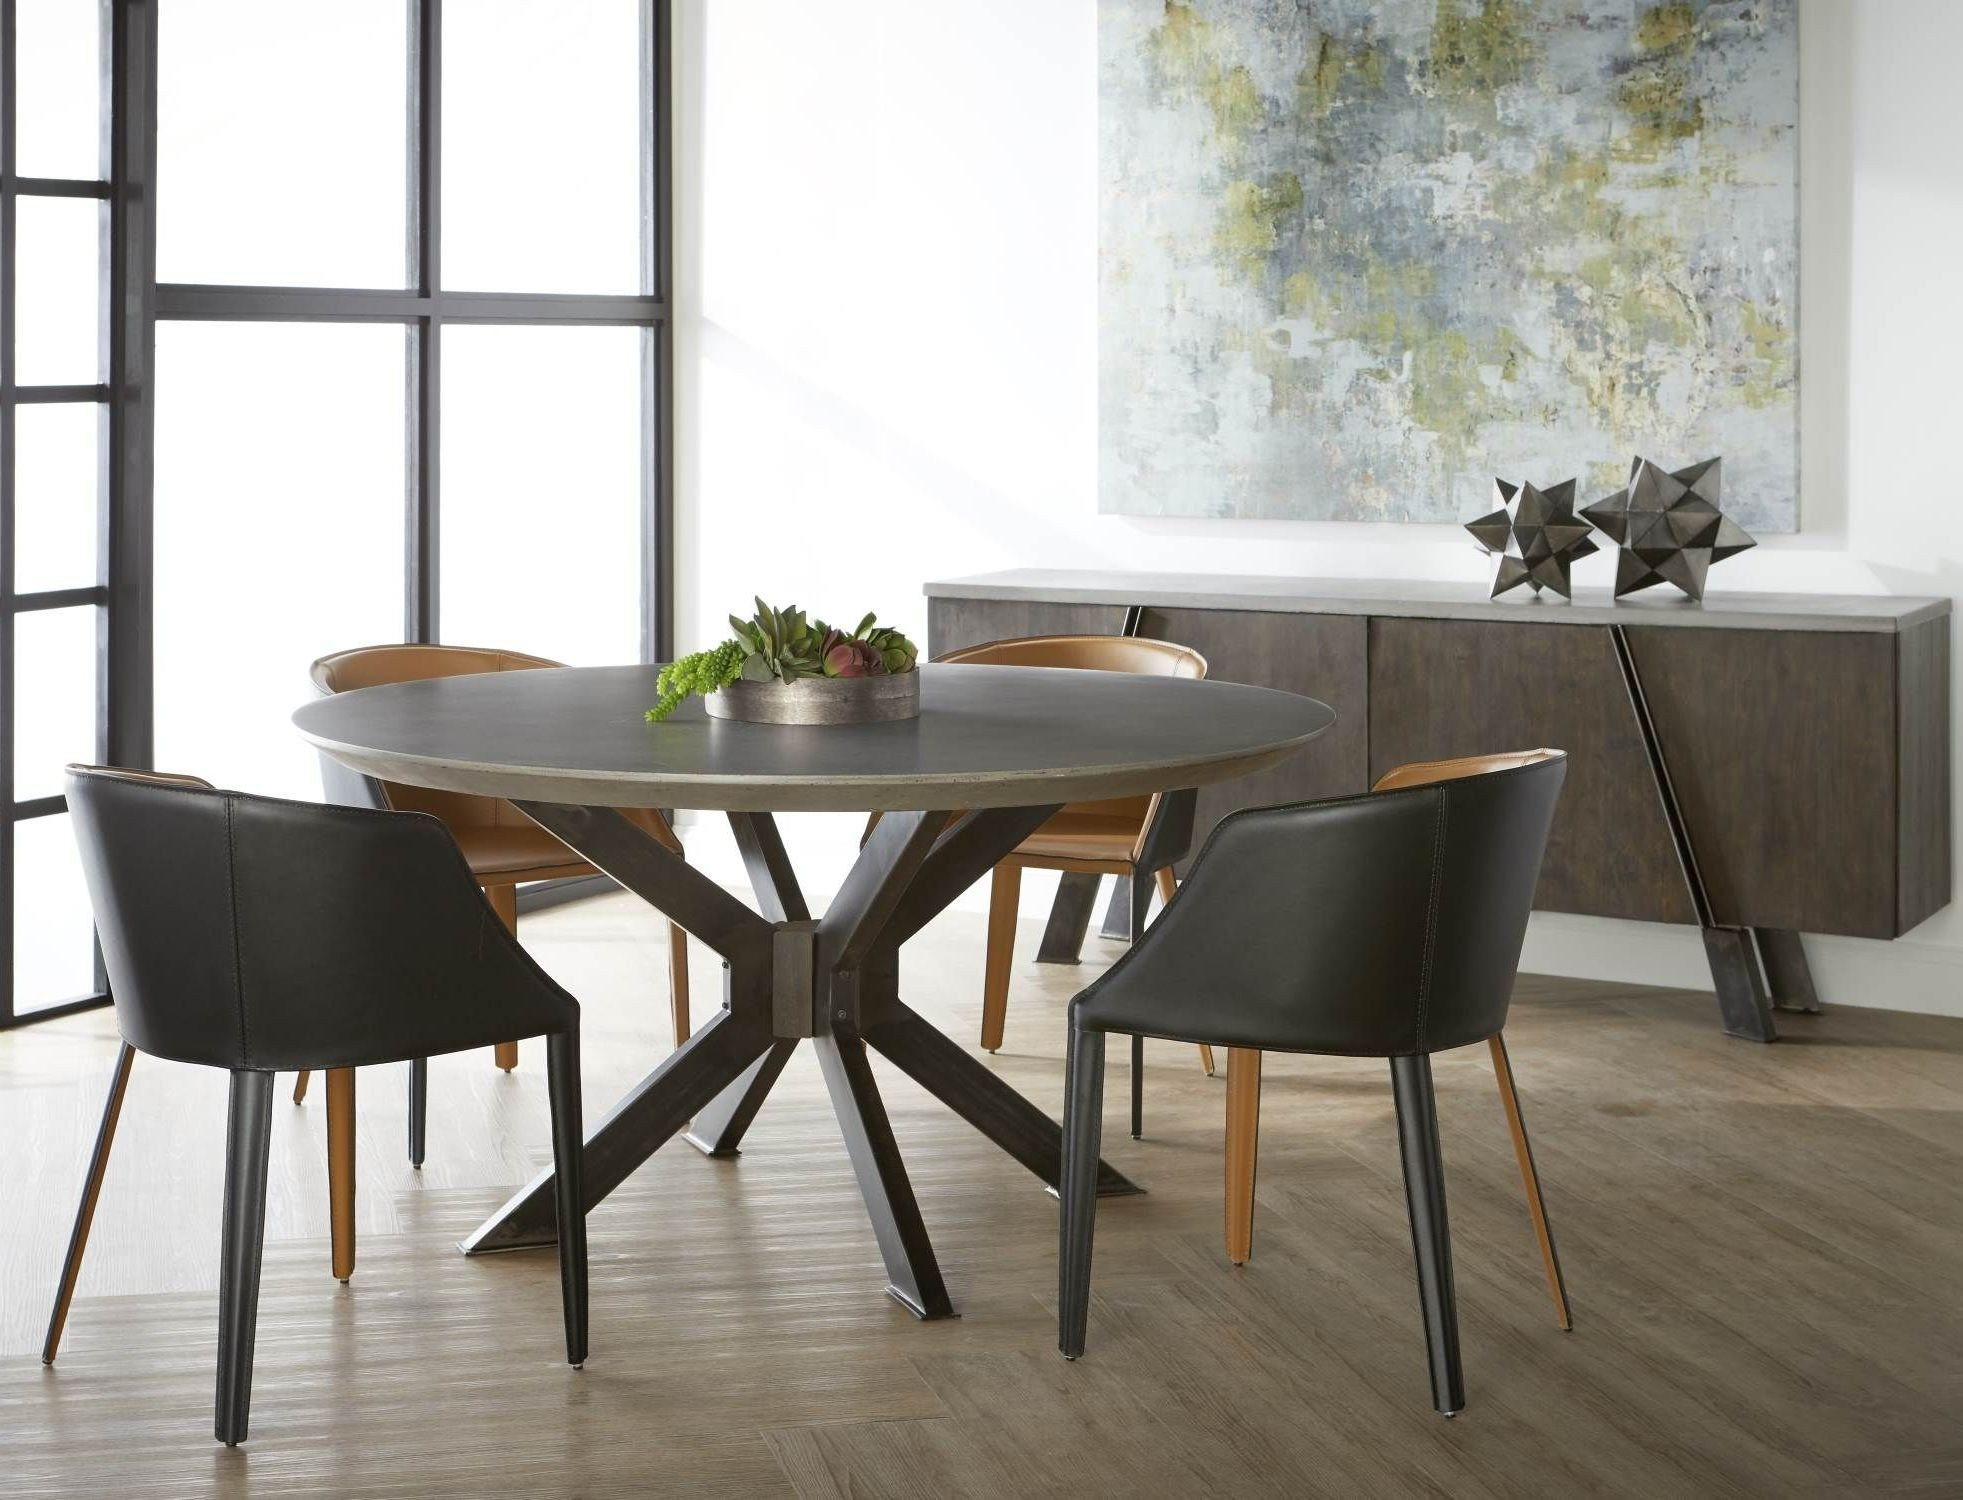 Industry ash grey concrete round dining table media gallery 4